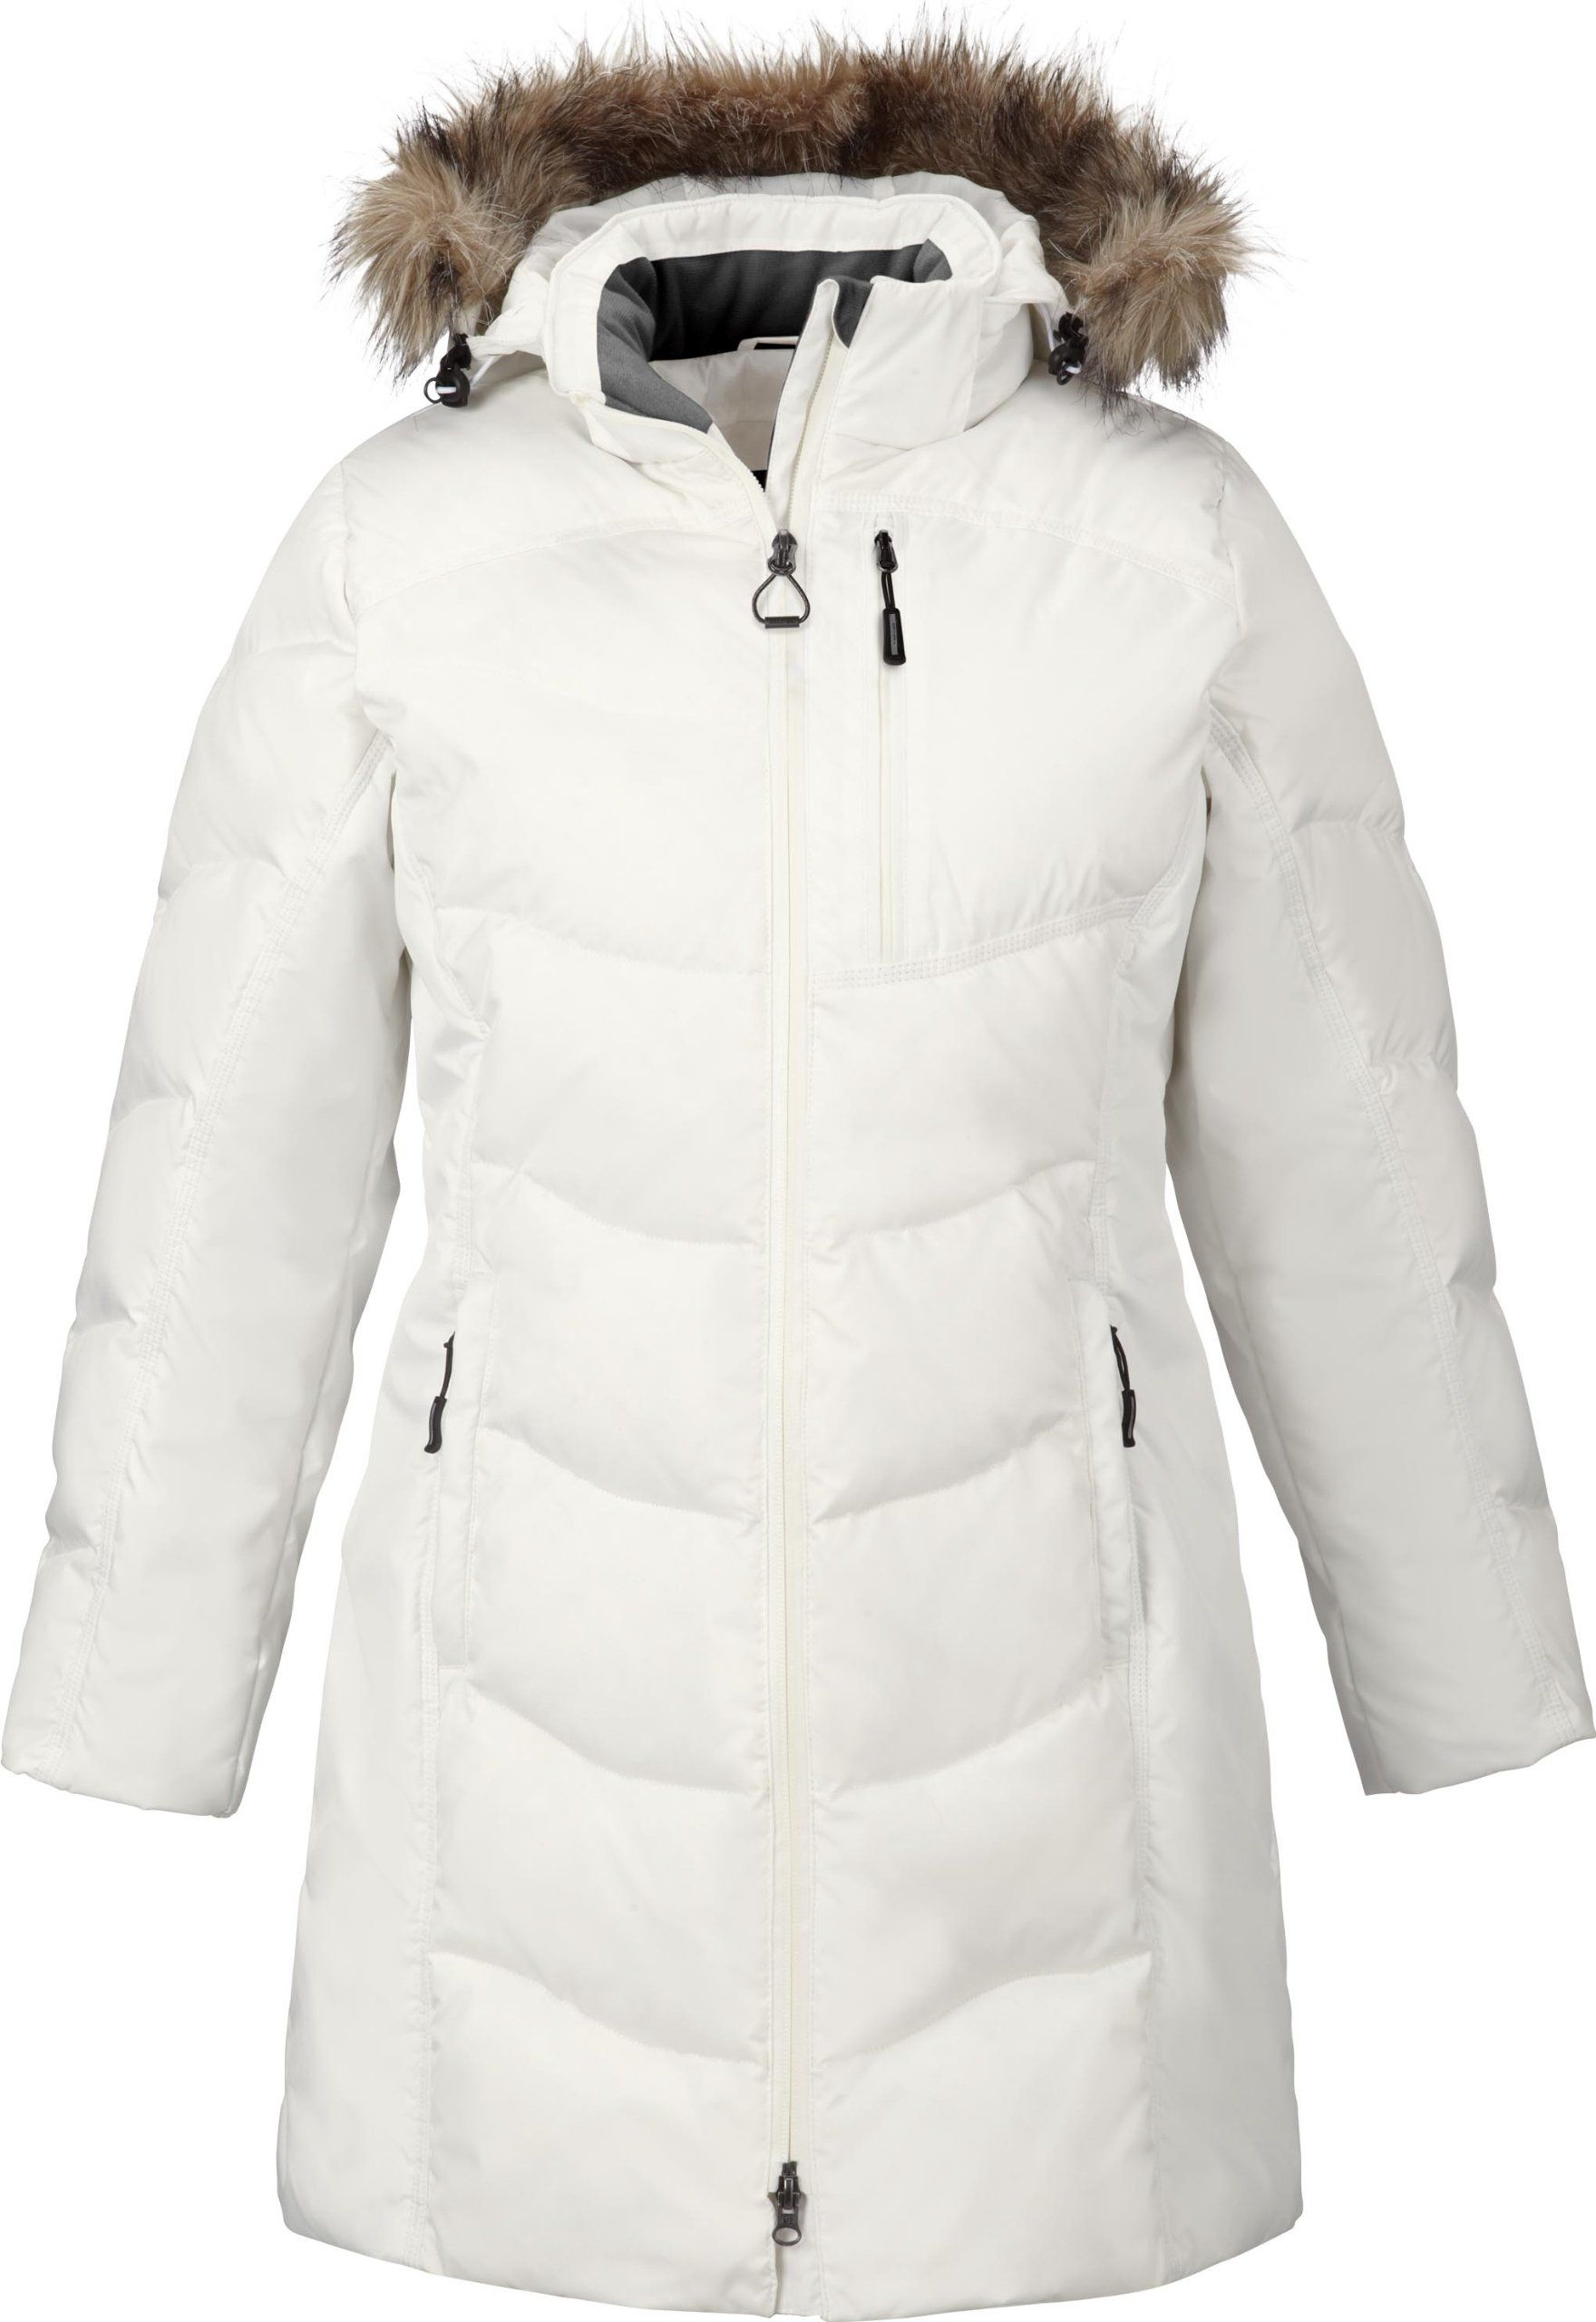 72aaaafb9 North End Womens Boreal Faux Fur Trim Extreme Weather Down Jacket ...